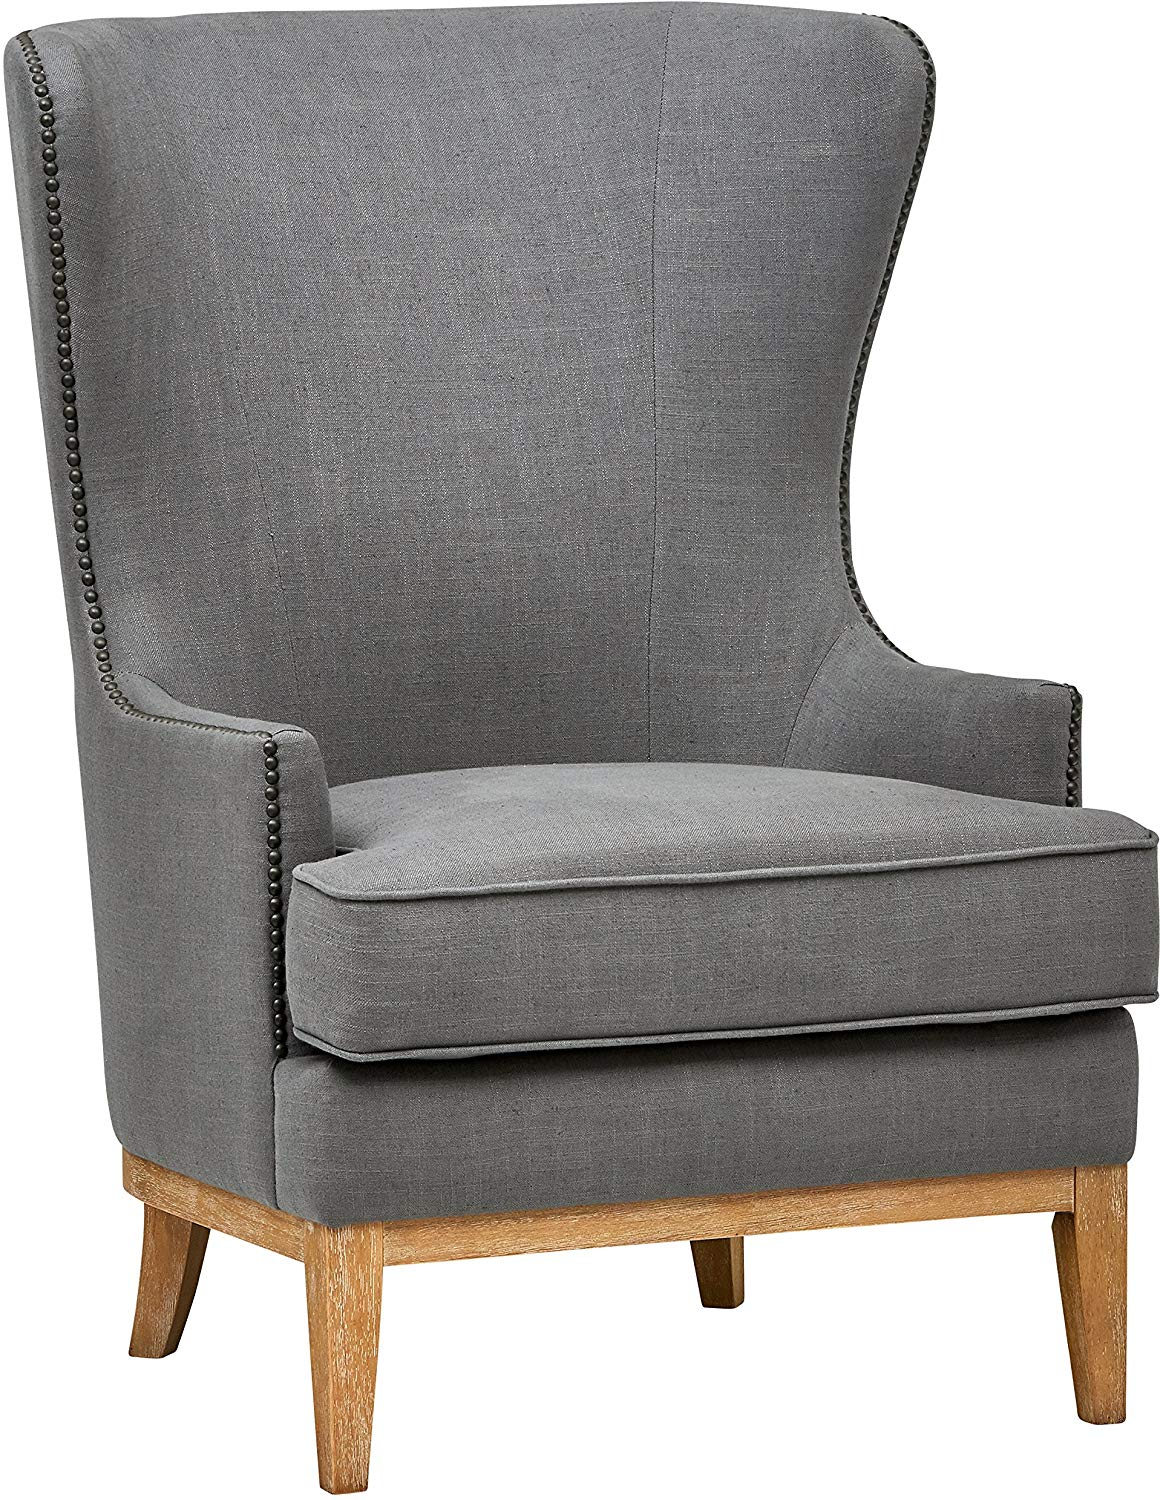 Stone & Beam Traditional Nailhead Wingback Accent Chair